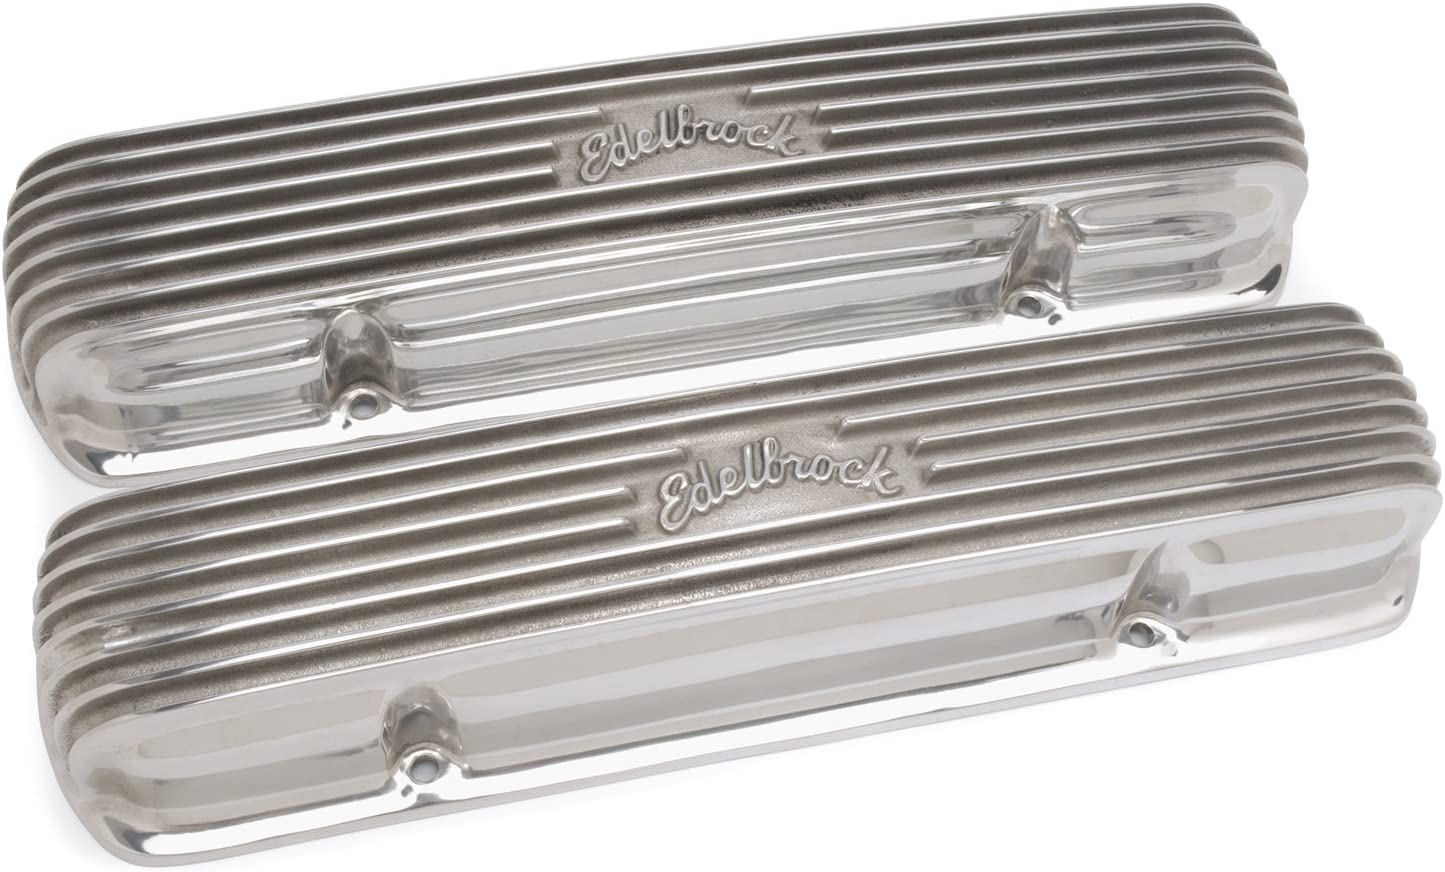 Edelbrock 4130 VALVE COVERS